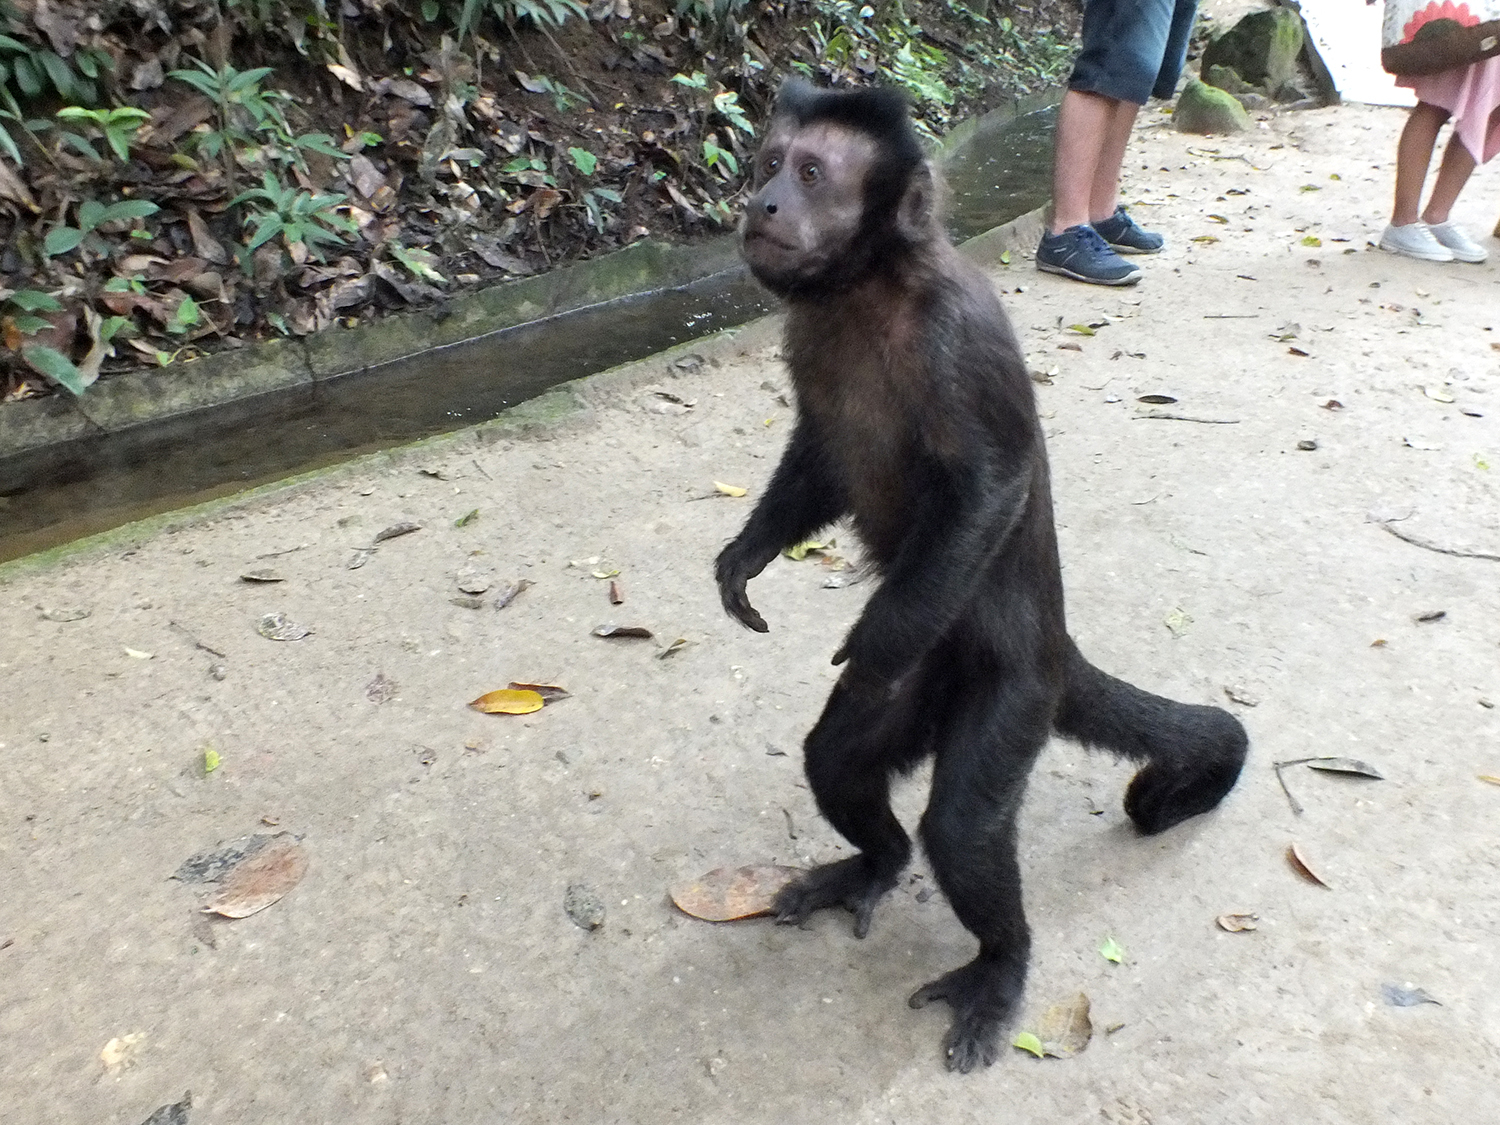 Image of Black Capuchin